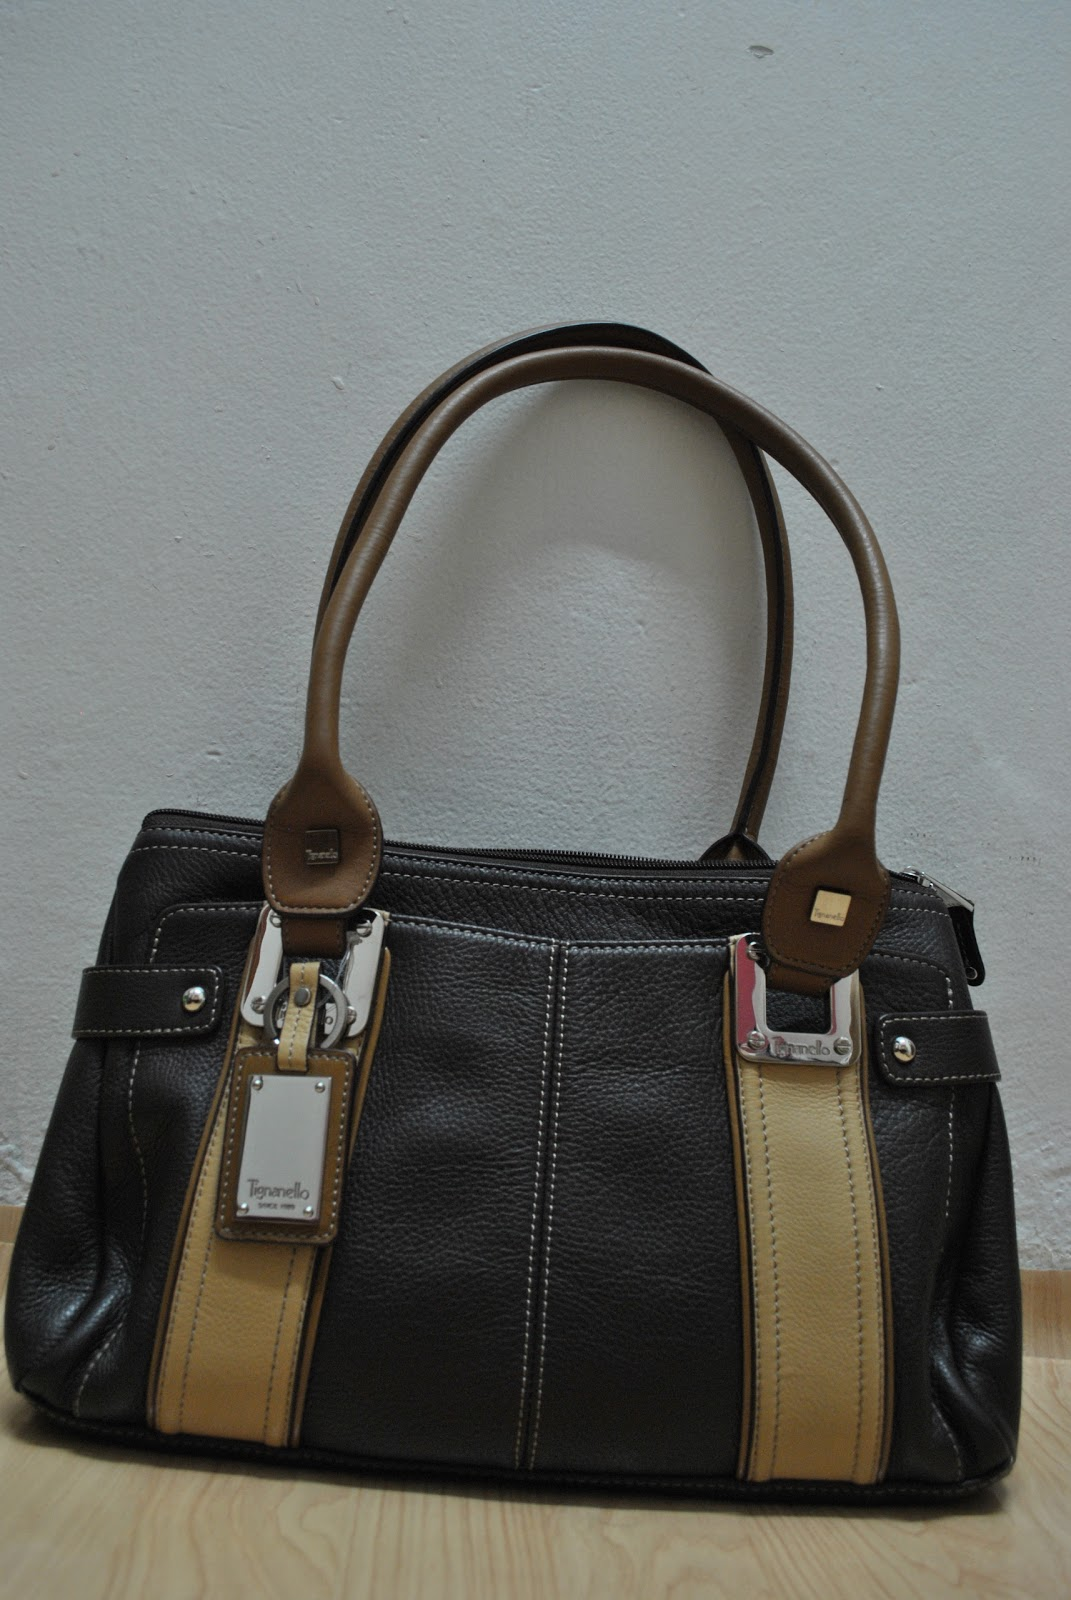 Tignanello handbags